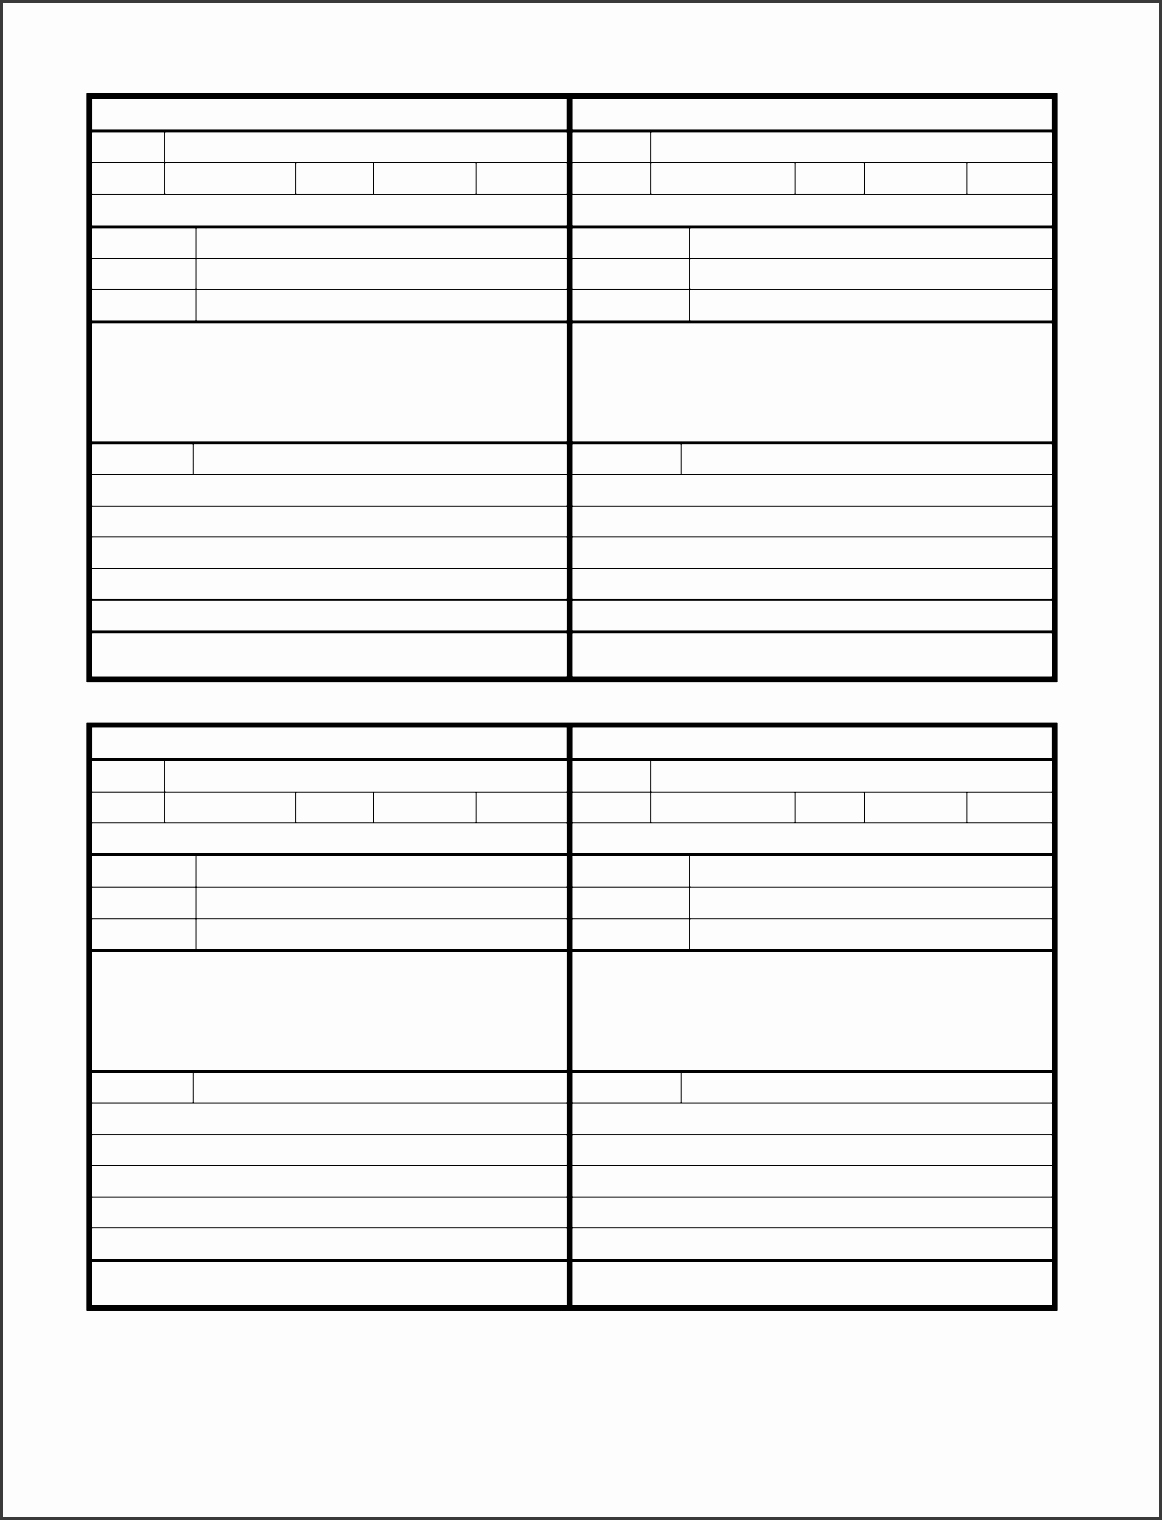 phone message log templates